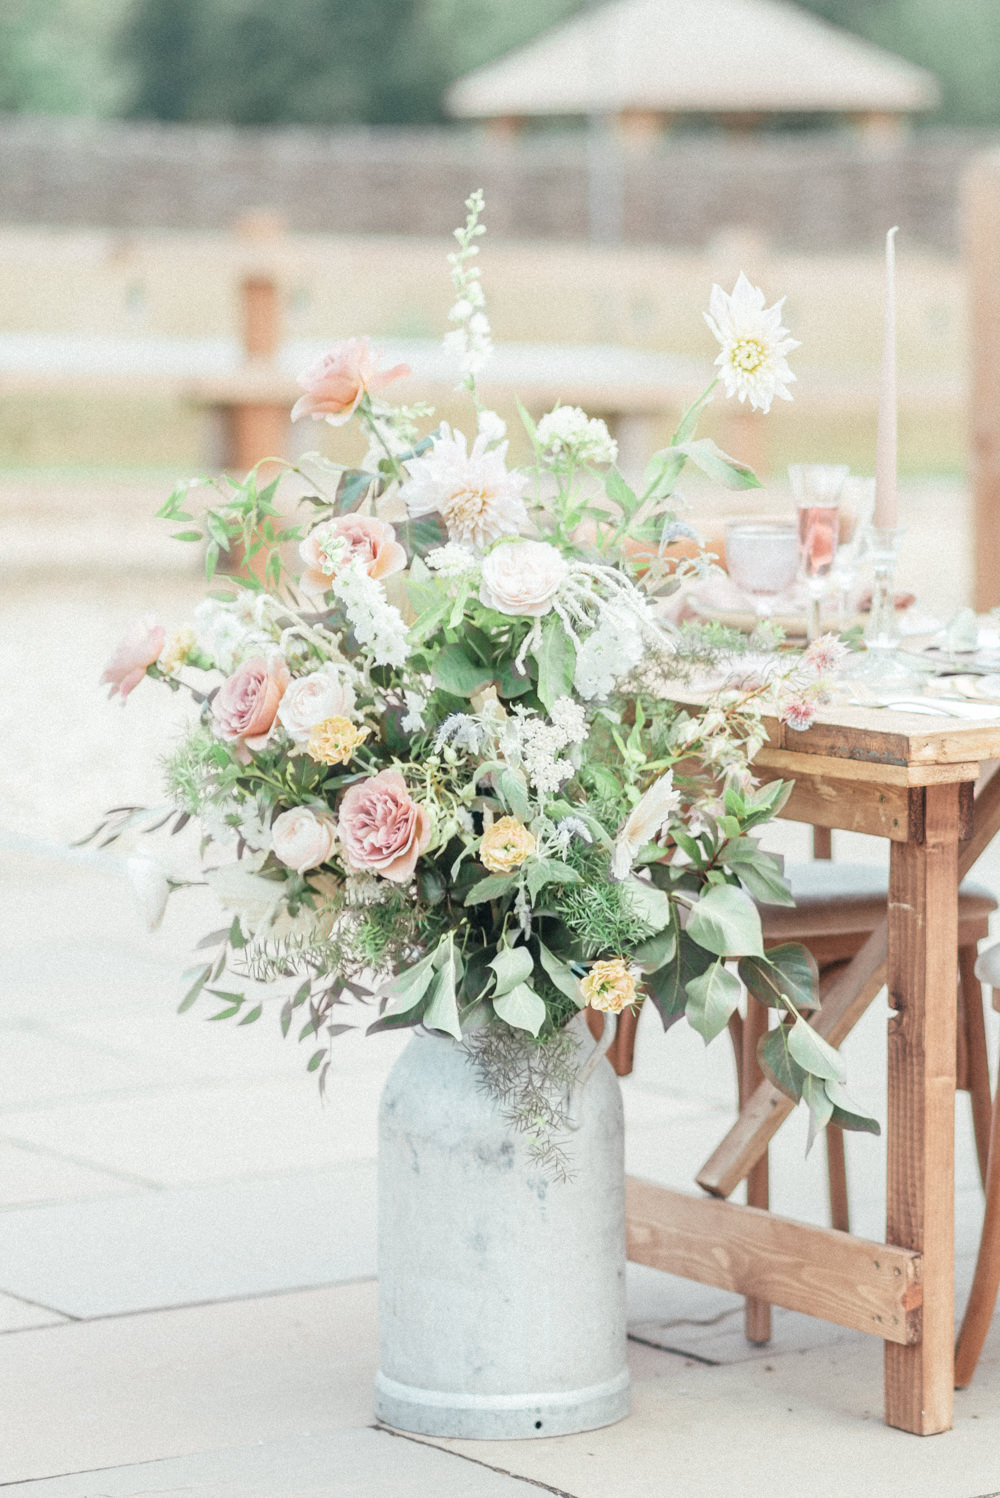 Milk Churn Flowers Table Decor Pink Rose Greenery UK Destination Wedding Hannah McClune Photography